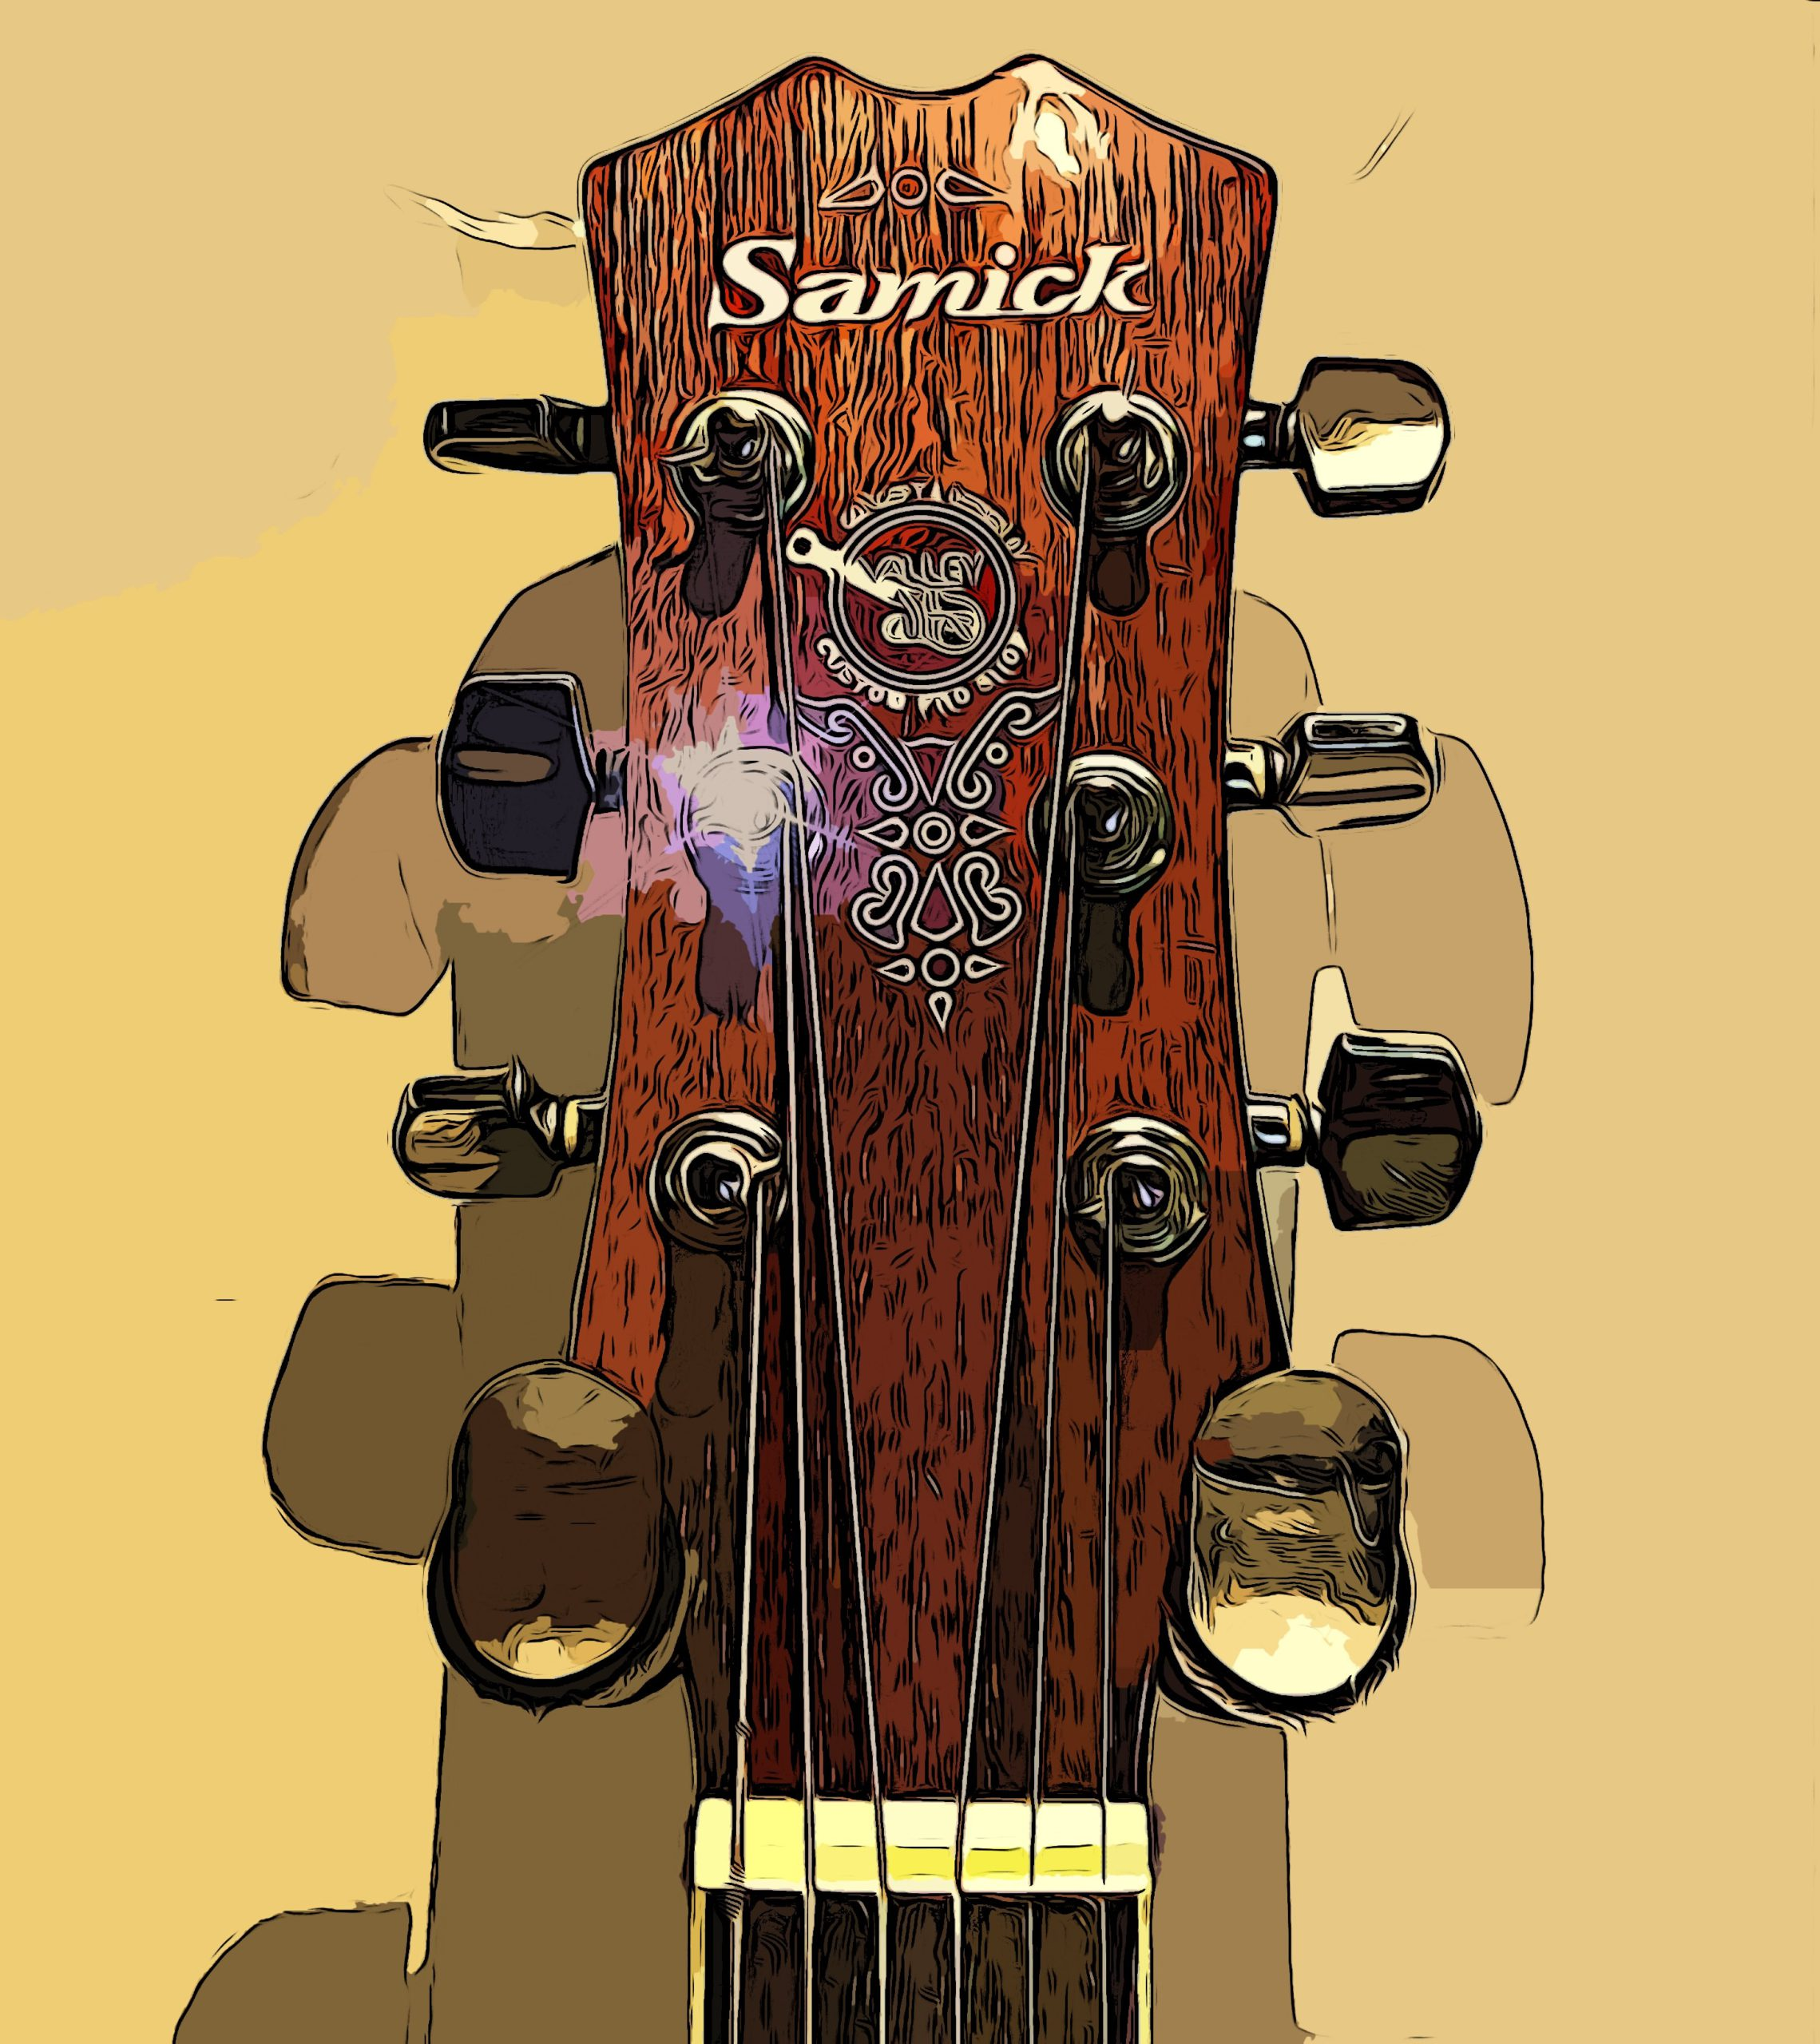 Samick cartooned headstock